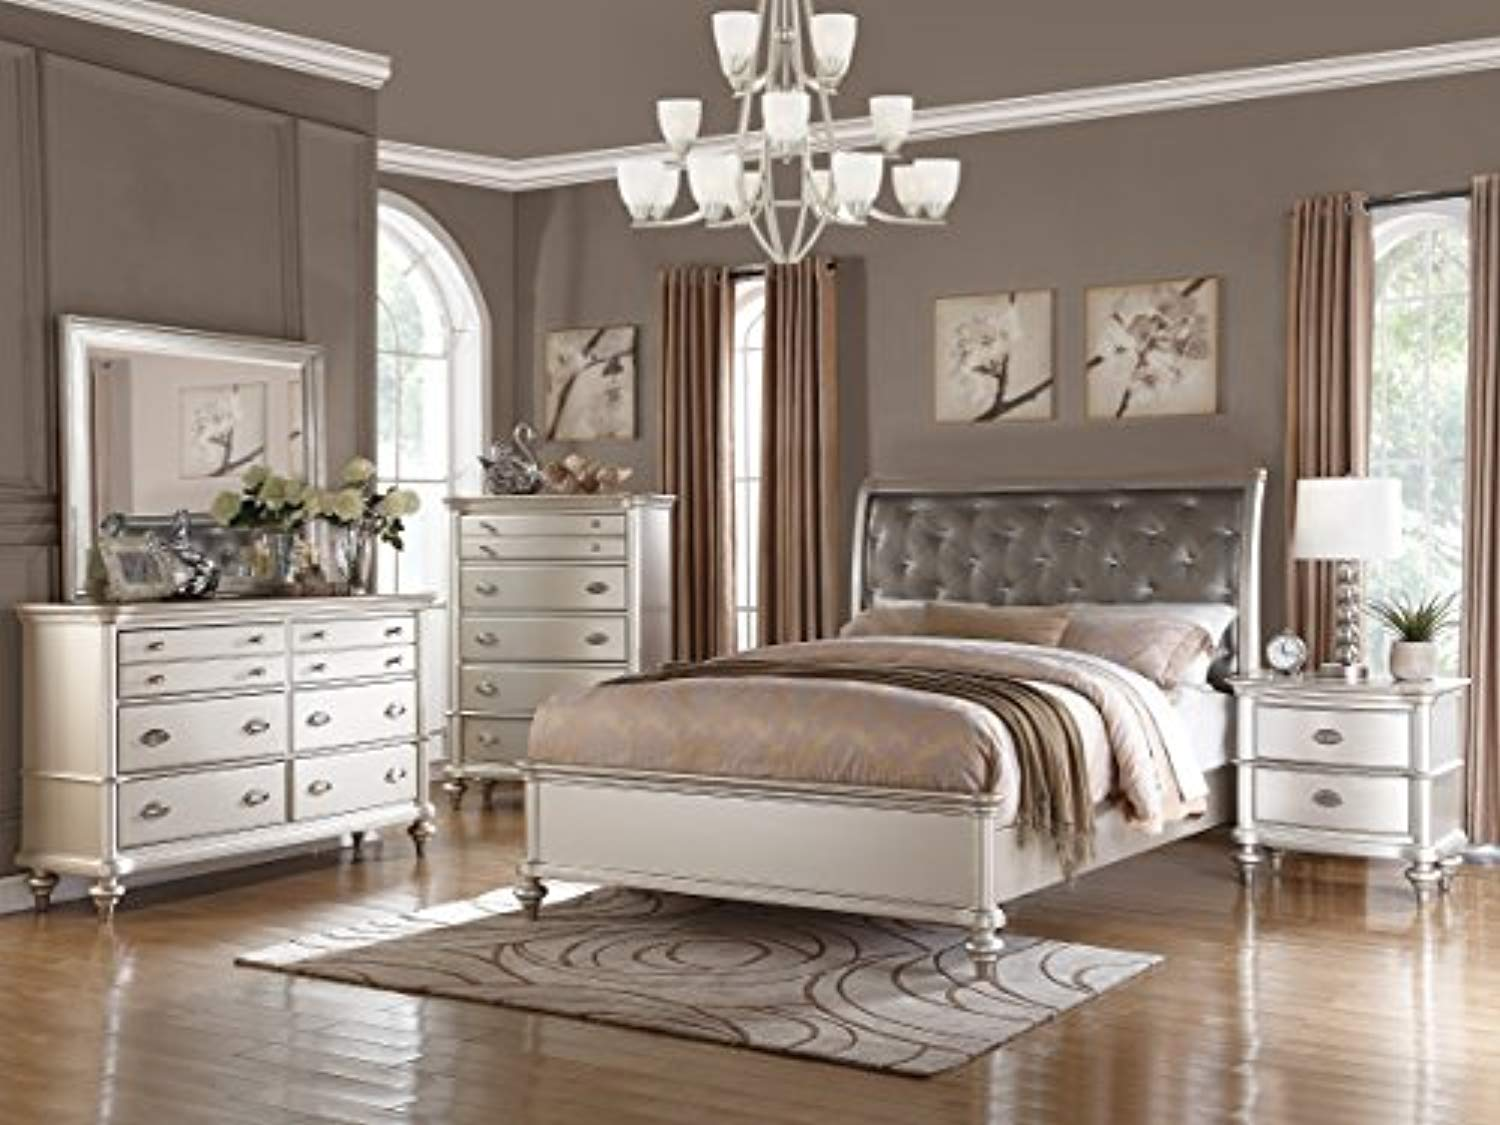 Silver Magical Bedroom Furniture Accent Tufted Hb Eastern King Size Bed Royal Dresser Mirror Nightstand 4pc Set